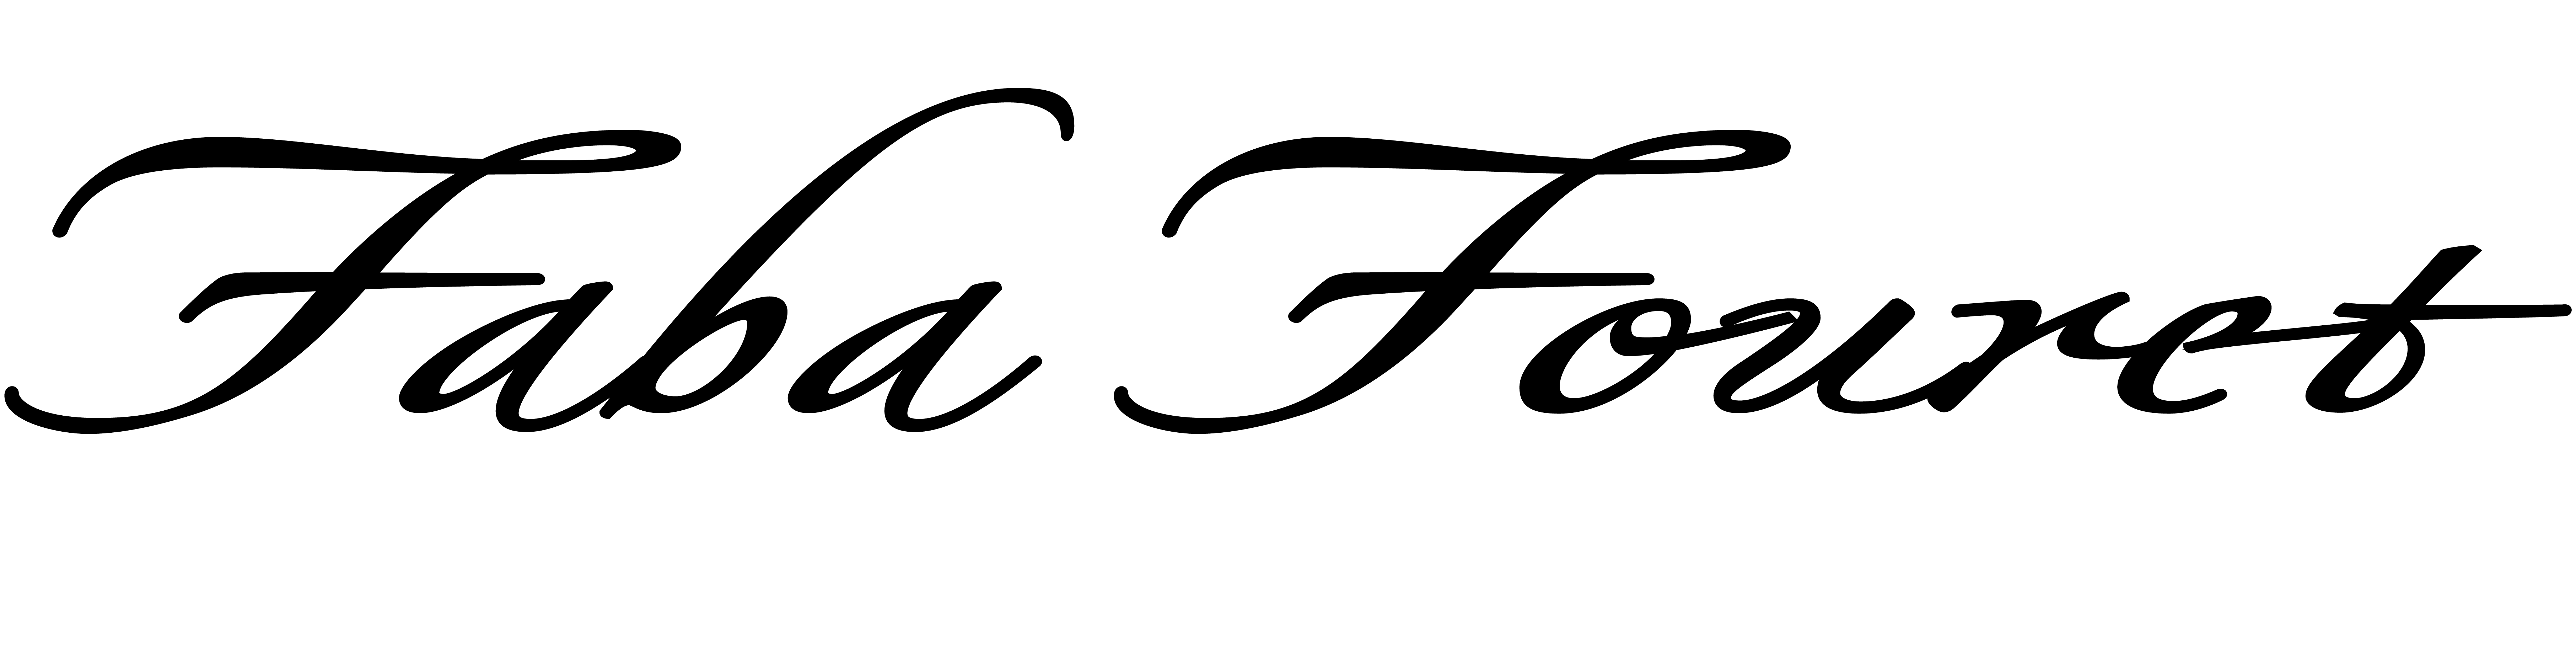 faba fouret's Signature